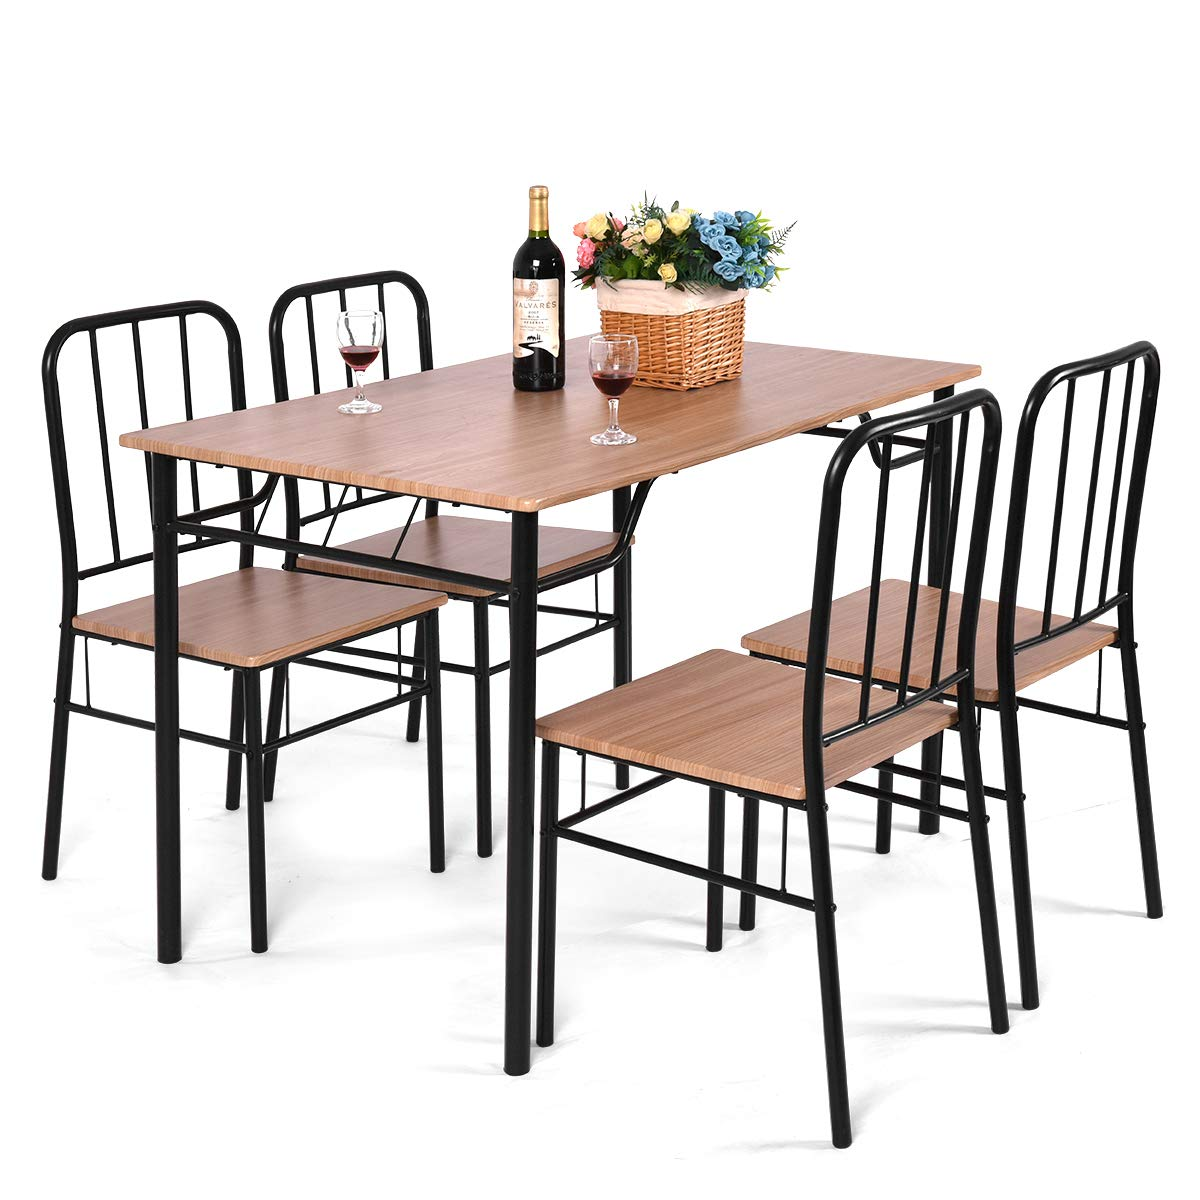 Giantex 5 Piece Dining Set Table and 4 Chairs Metal Wood Home Kitchen Modern Furniture